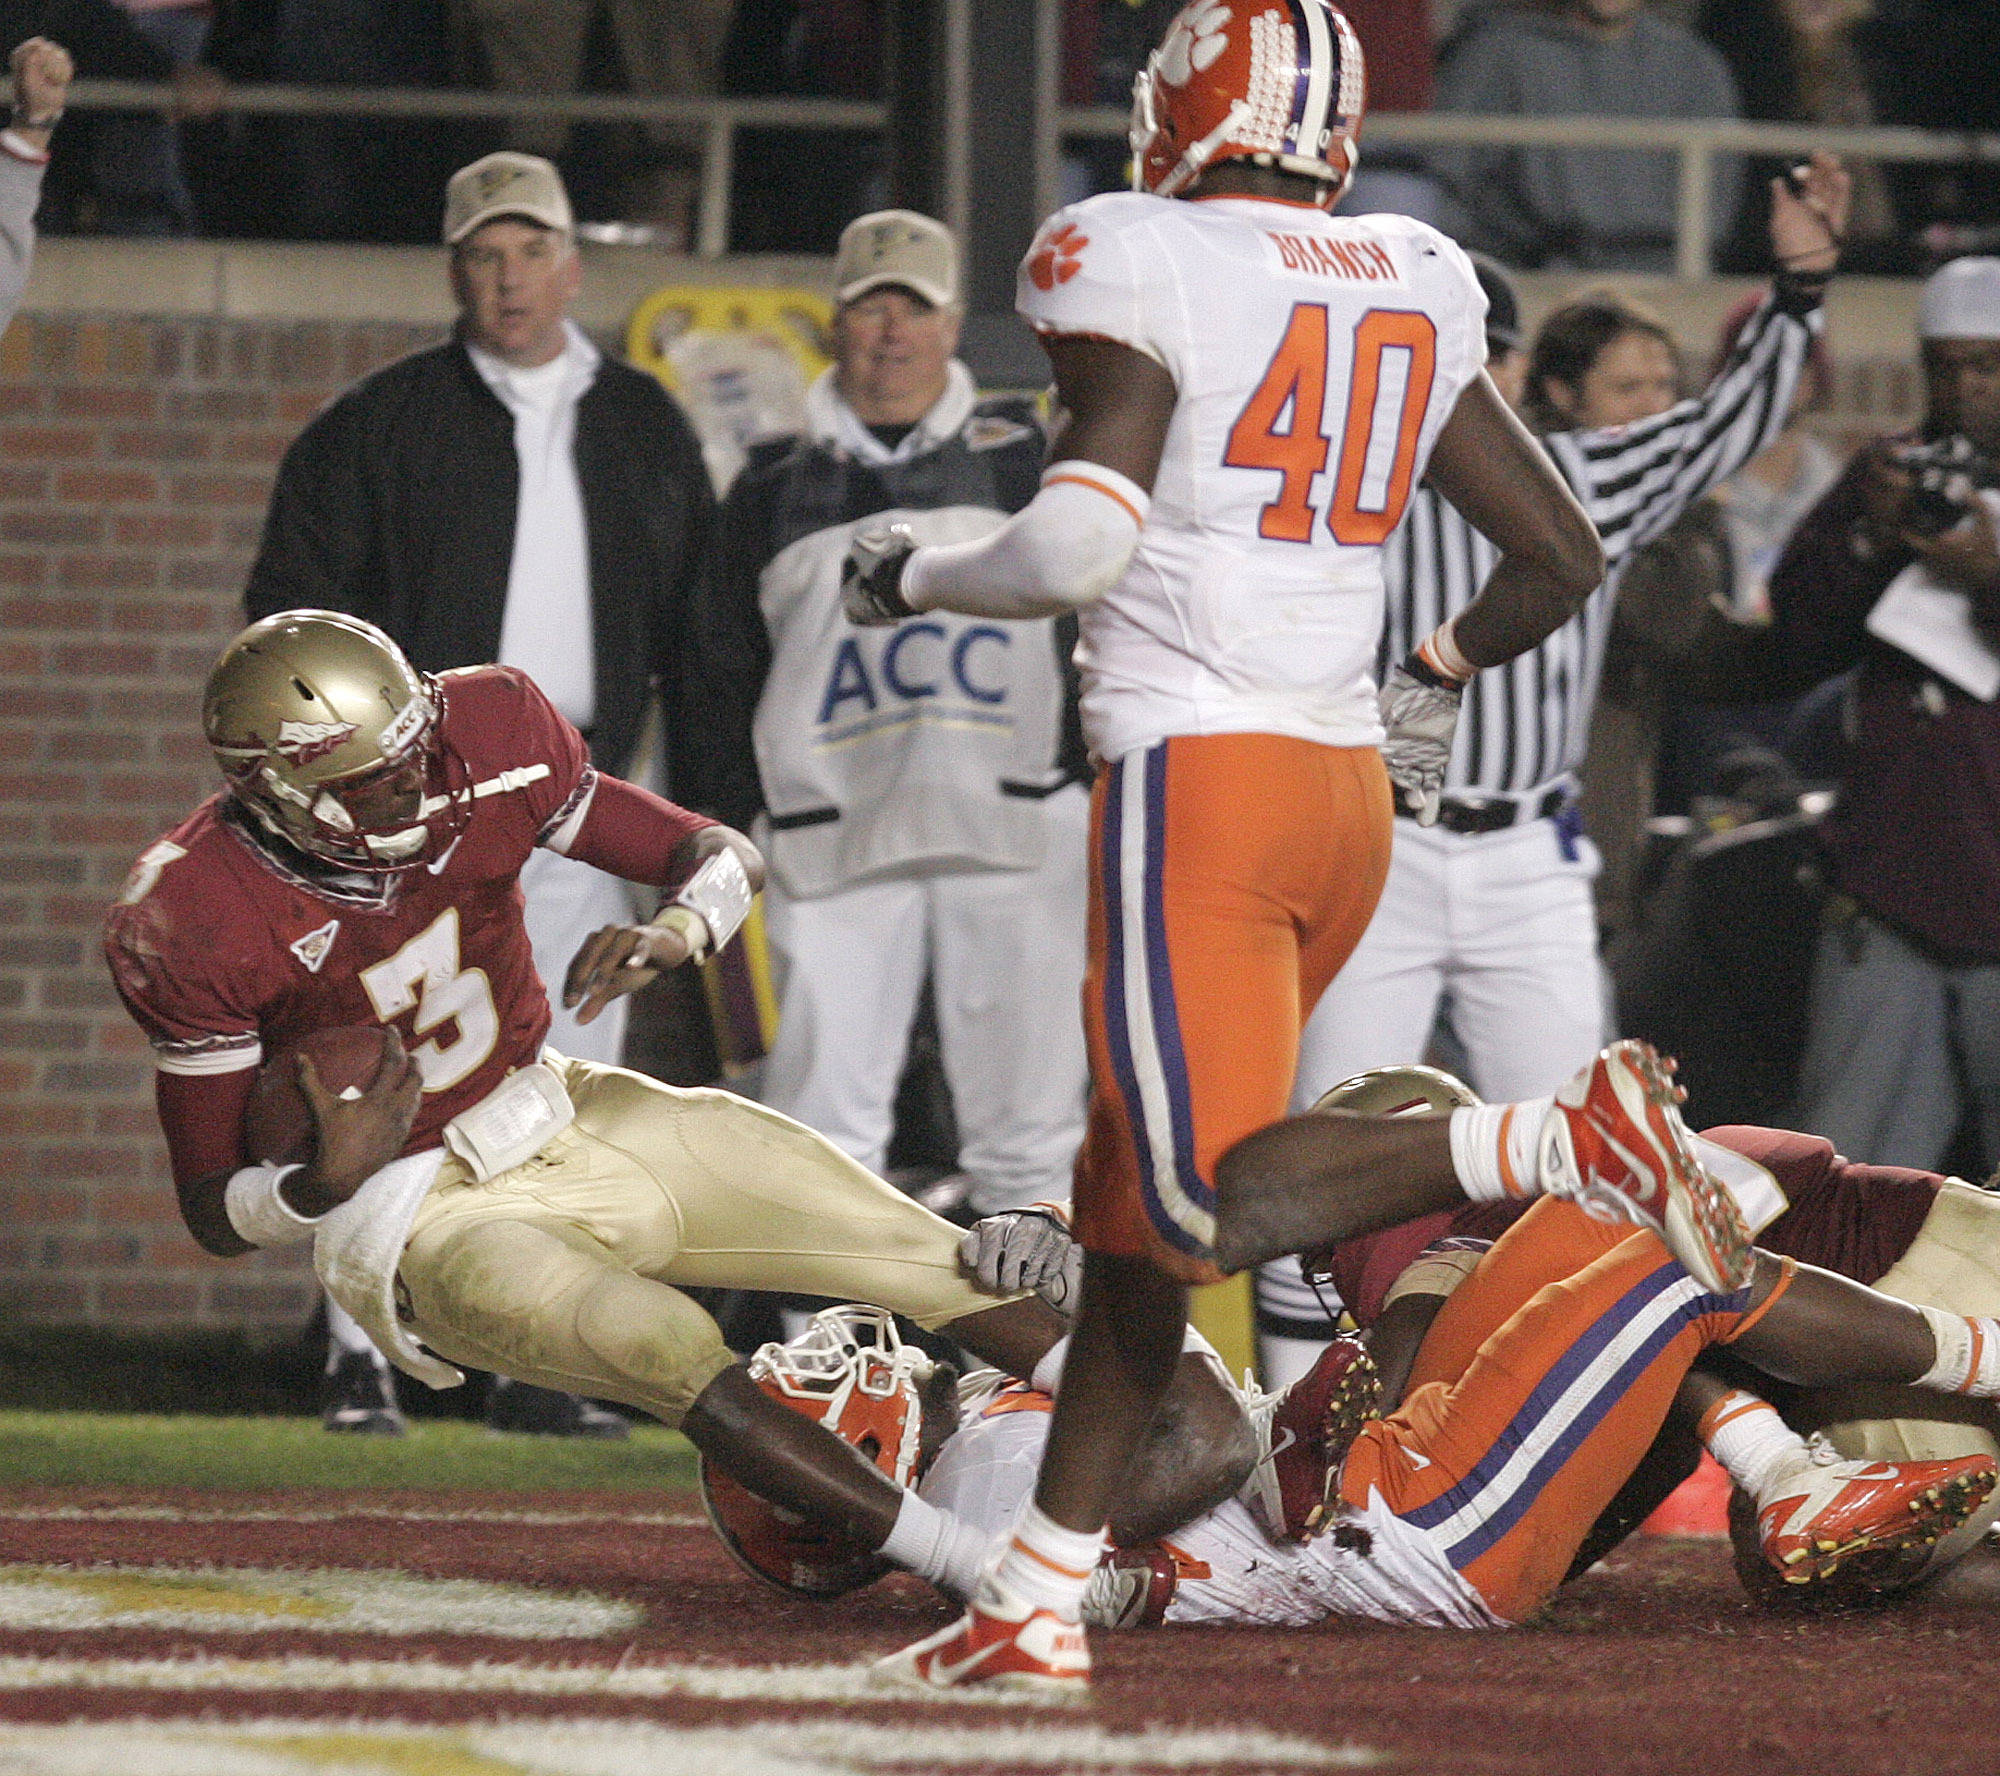 Dragging a Clemson defender Florida State's EJ Manuel scores in the fourth quarter of an NCAA college football game on Saturday, Nov. 13, 2010 in Tallahassee, Fla.(AP Photo/Steve Cannon)